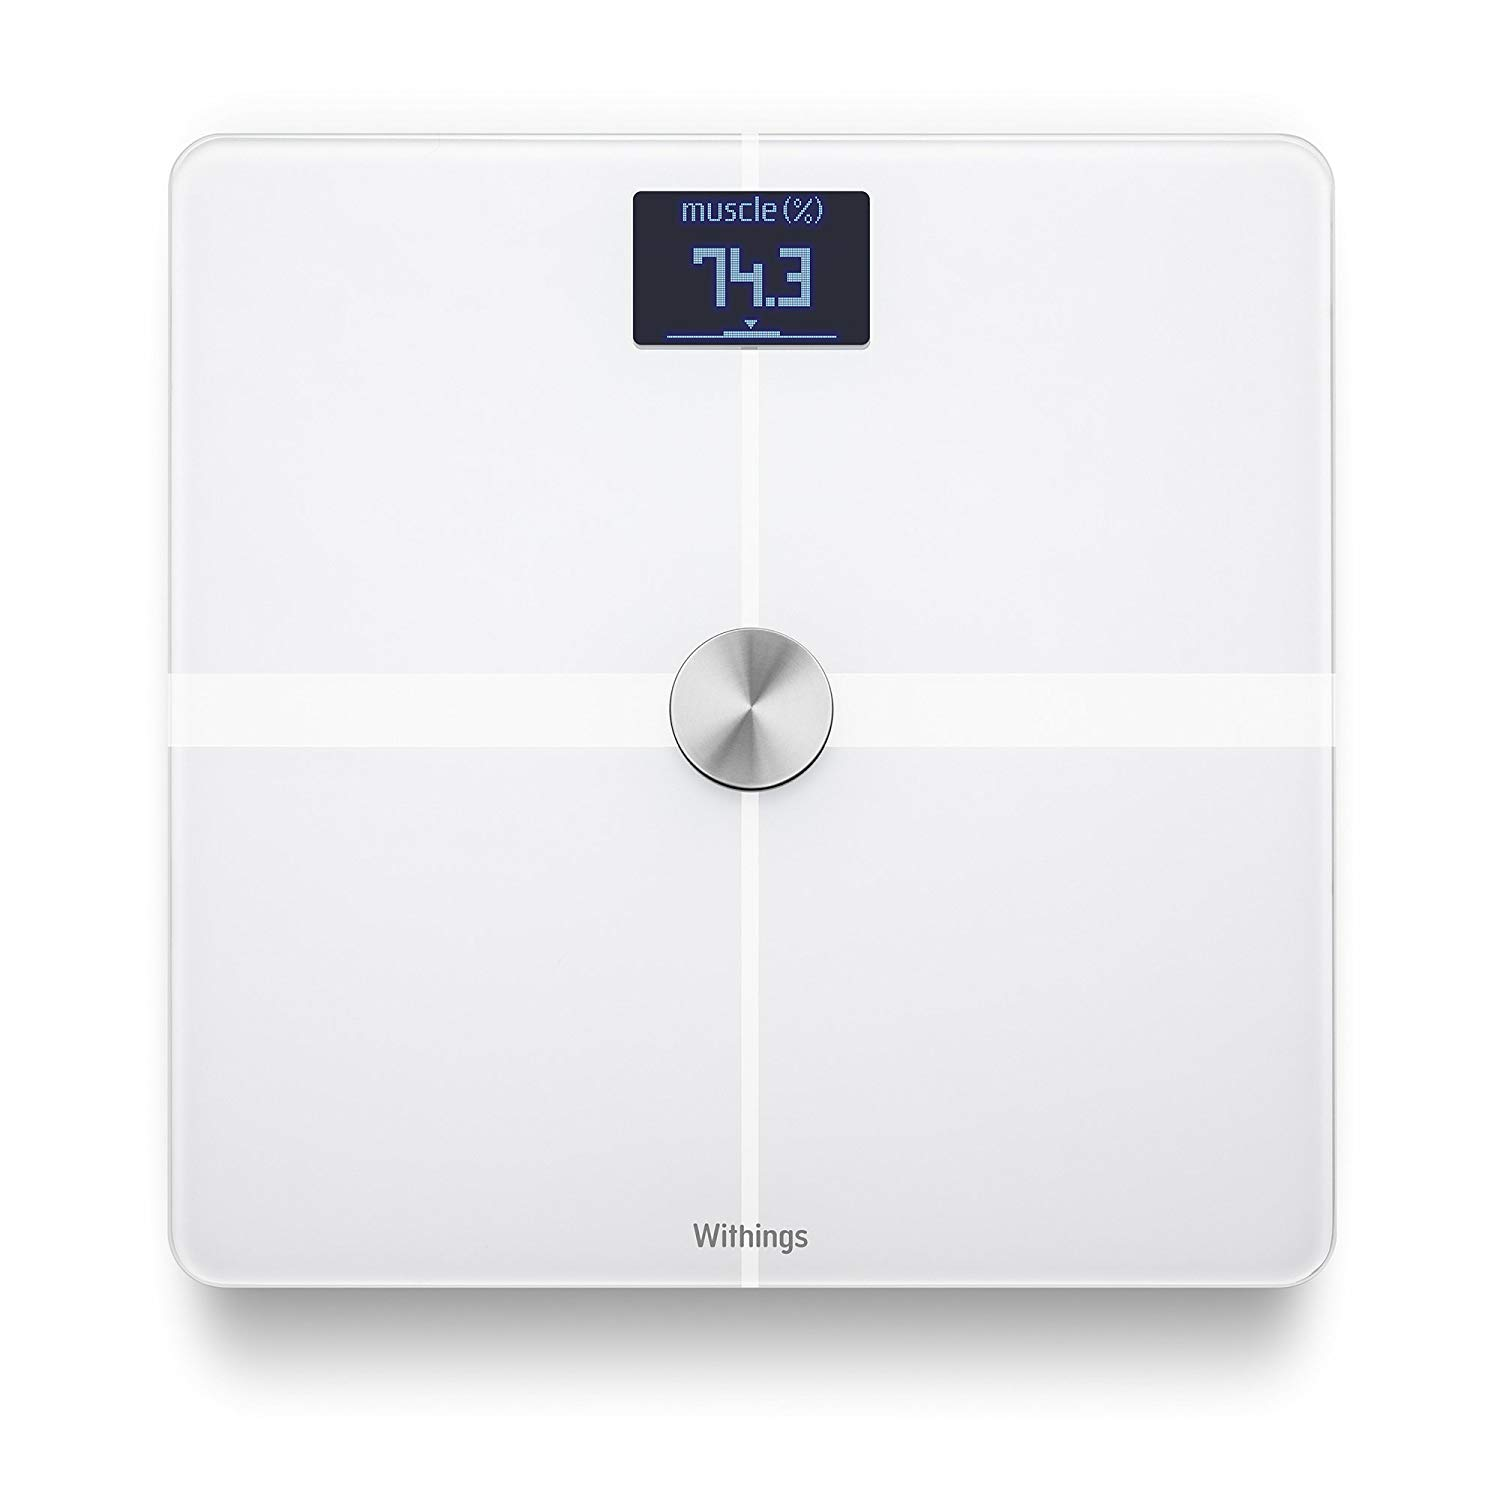 Image of Withings Body+ Smart Body Composition Wi-Fi Scale - White